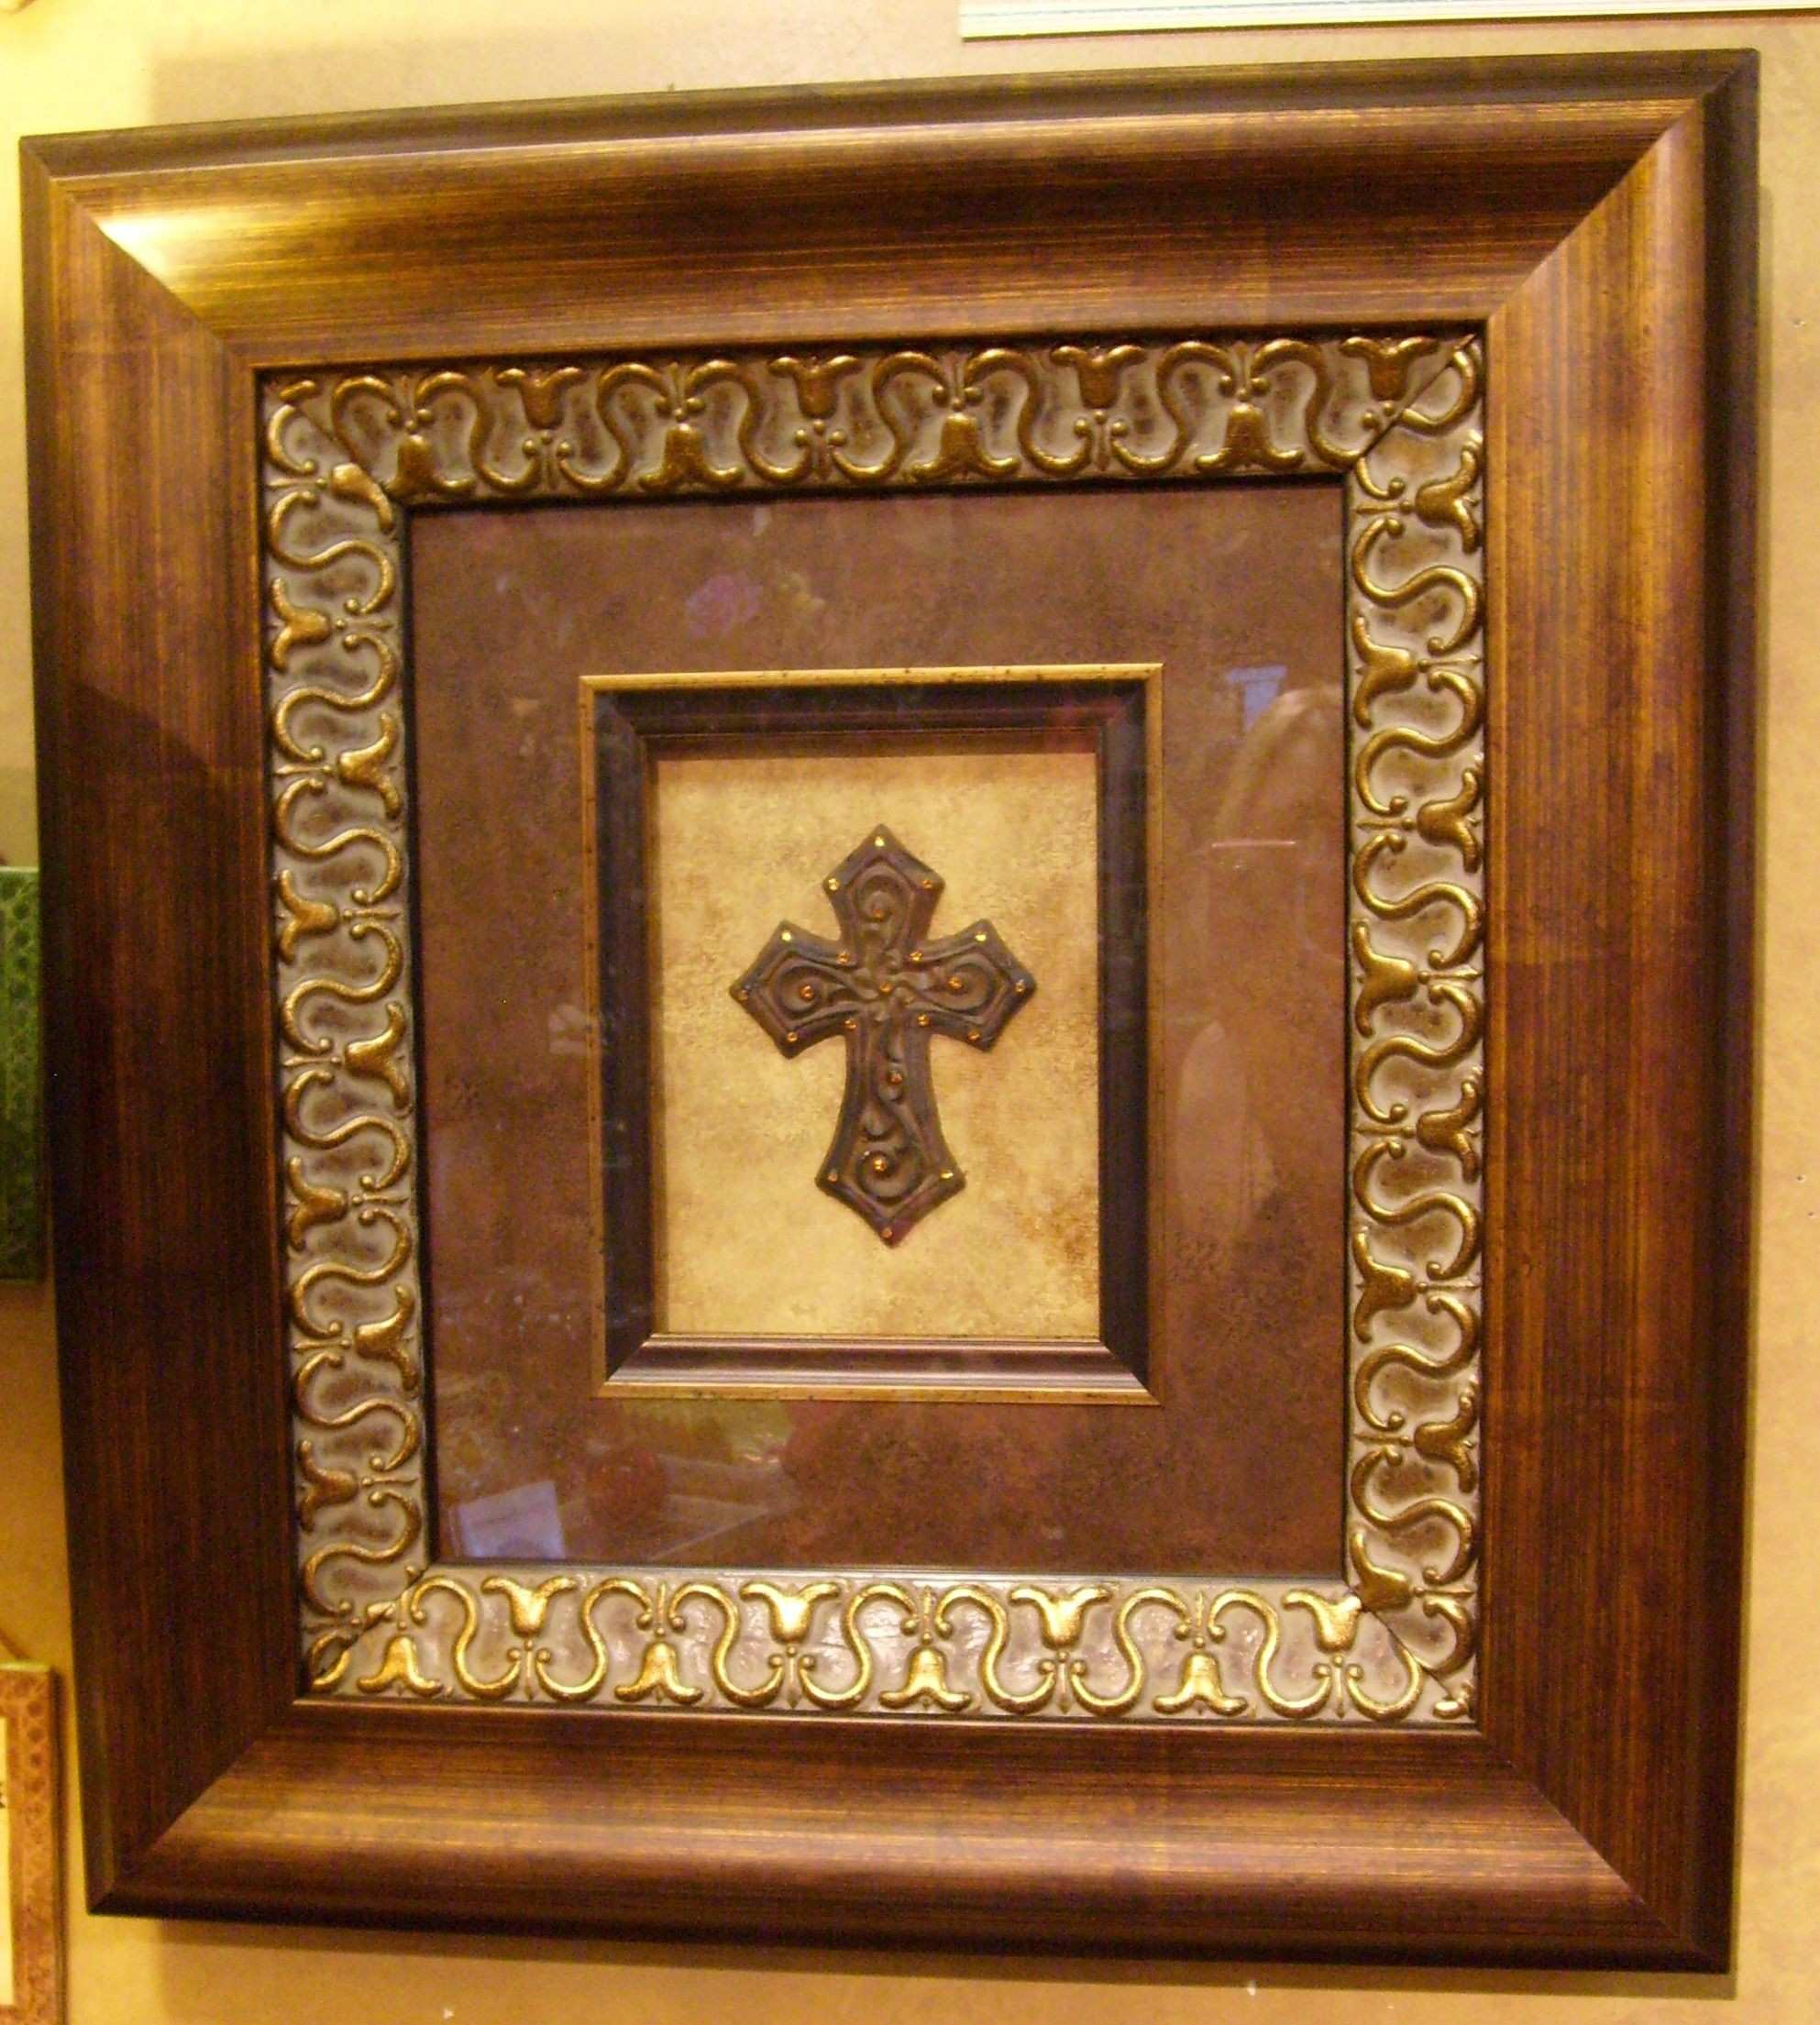 French Decor Tuscan Fleur De Lis Metal Wall Art Frame Sculpture Iron